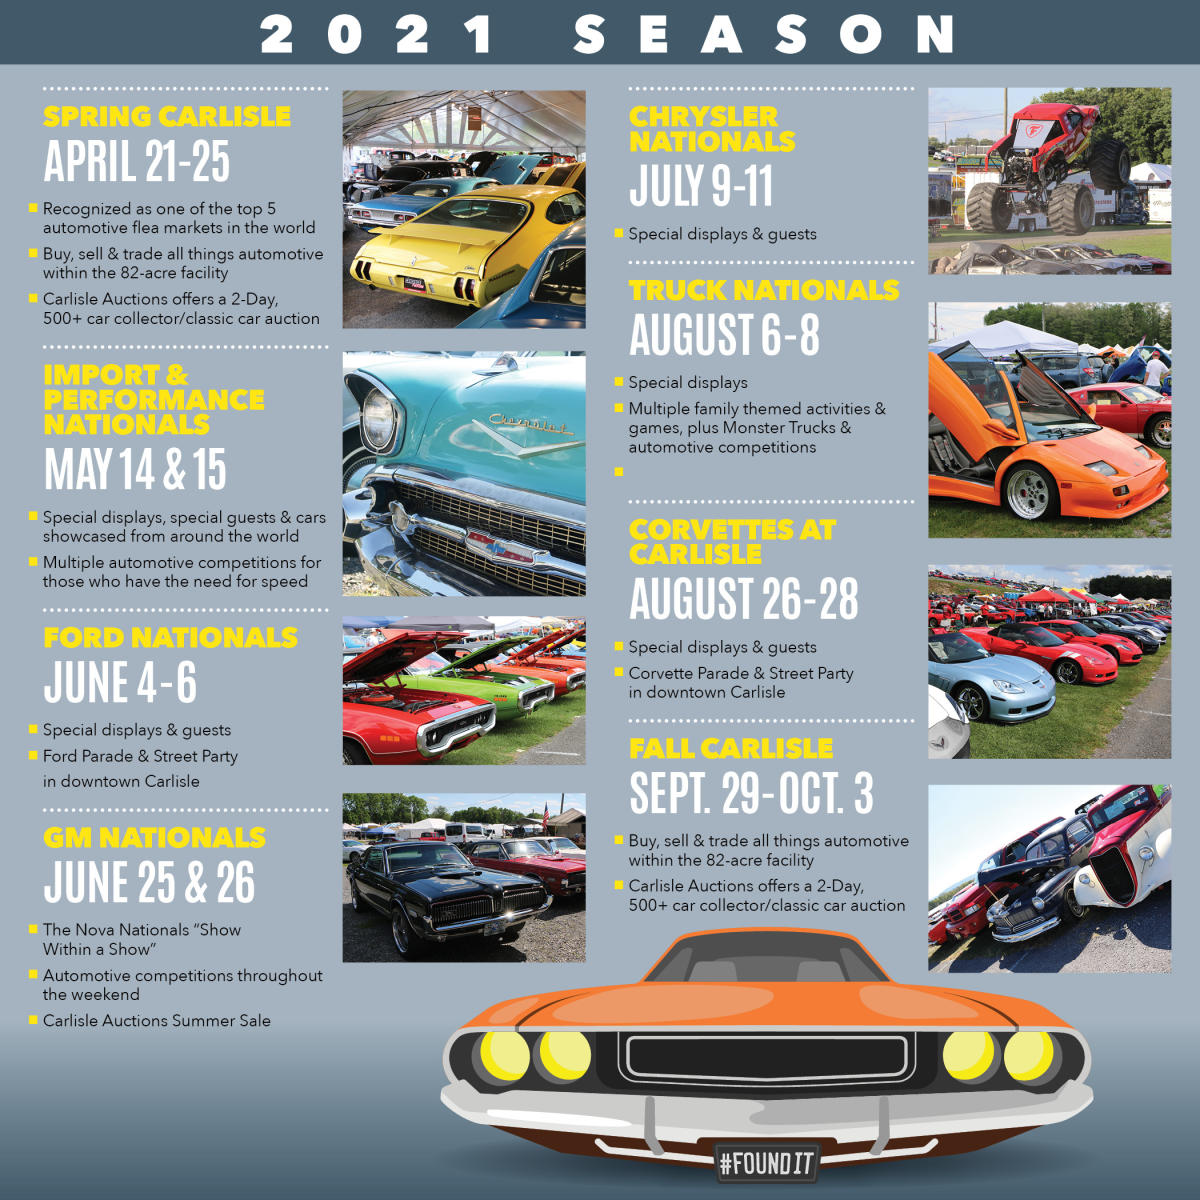 2021 Car Show Dates Infographic